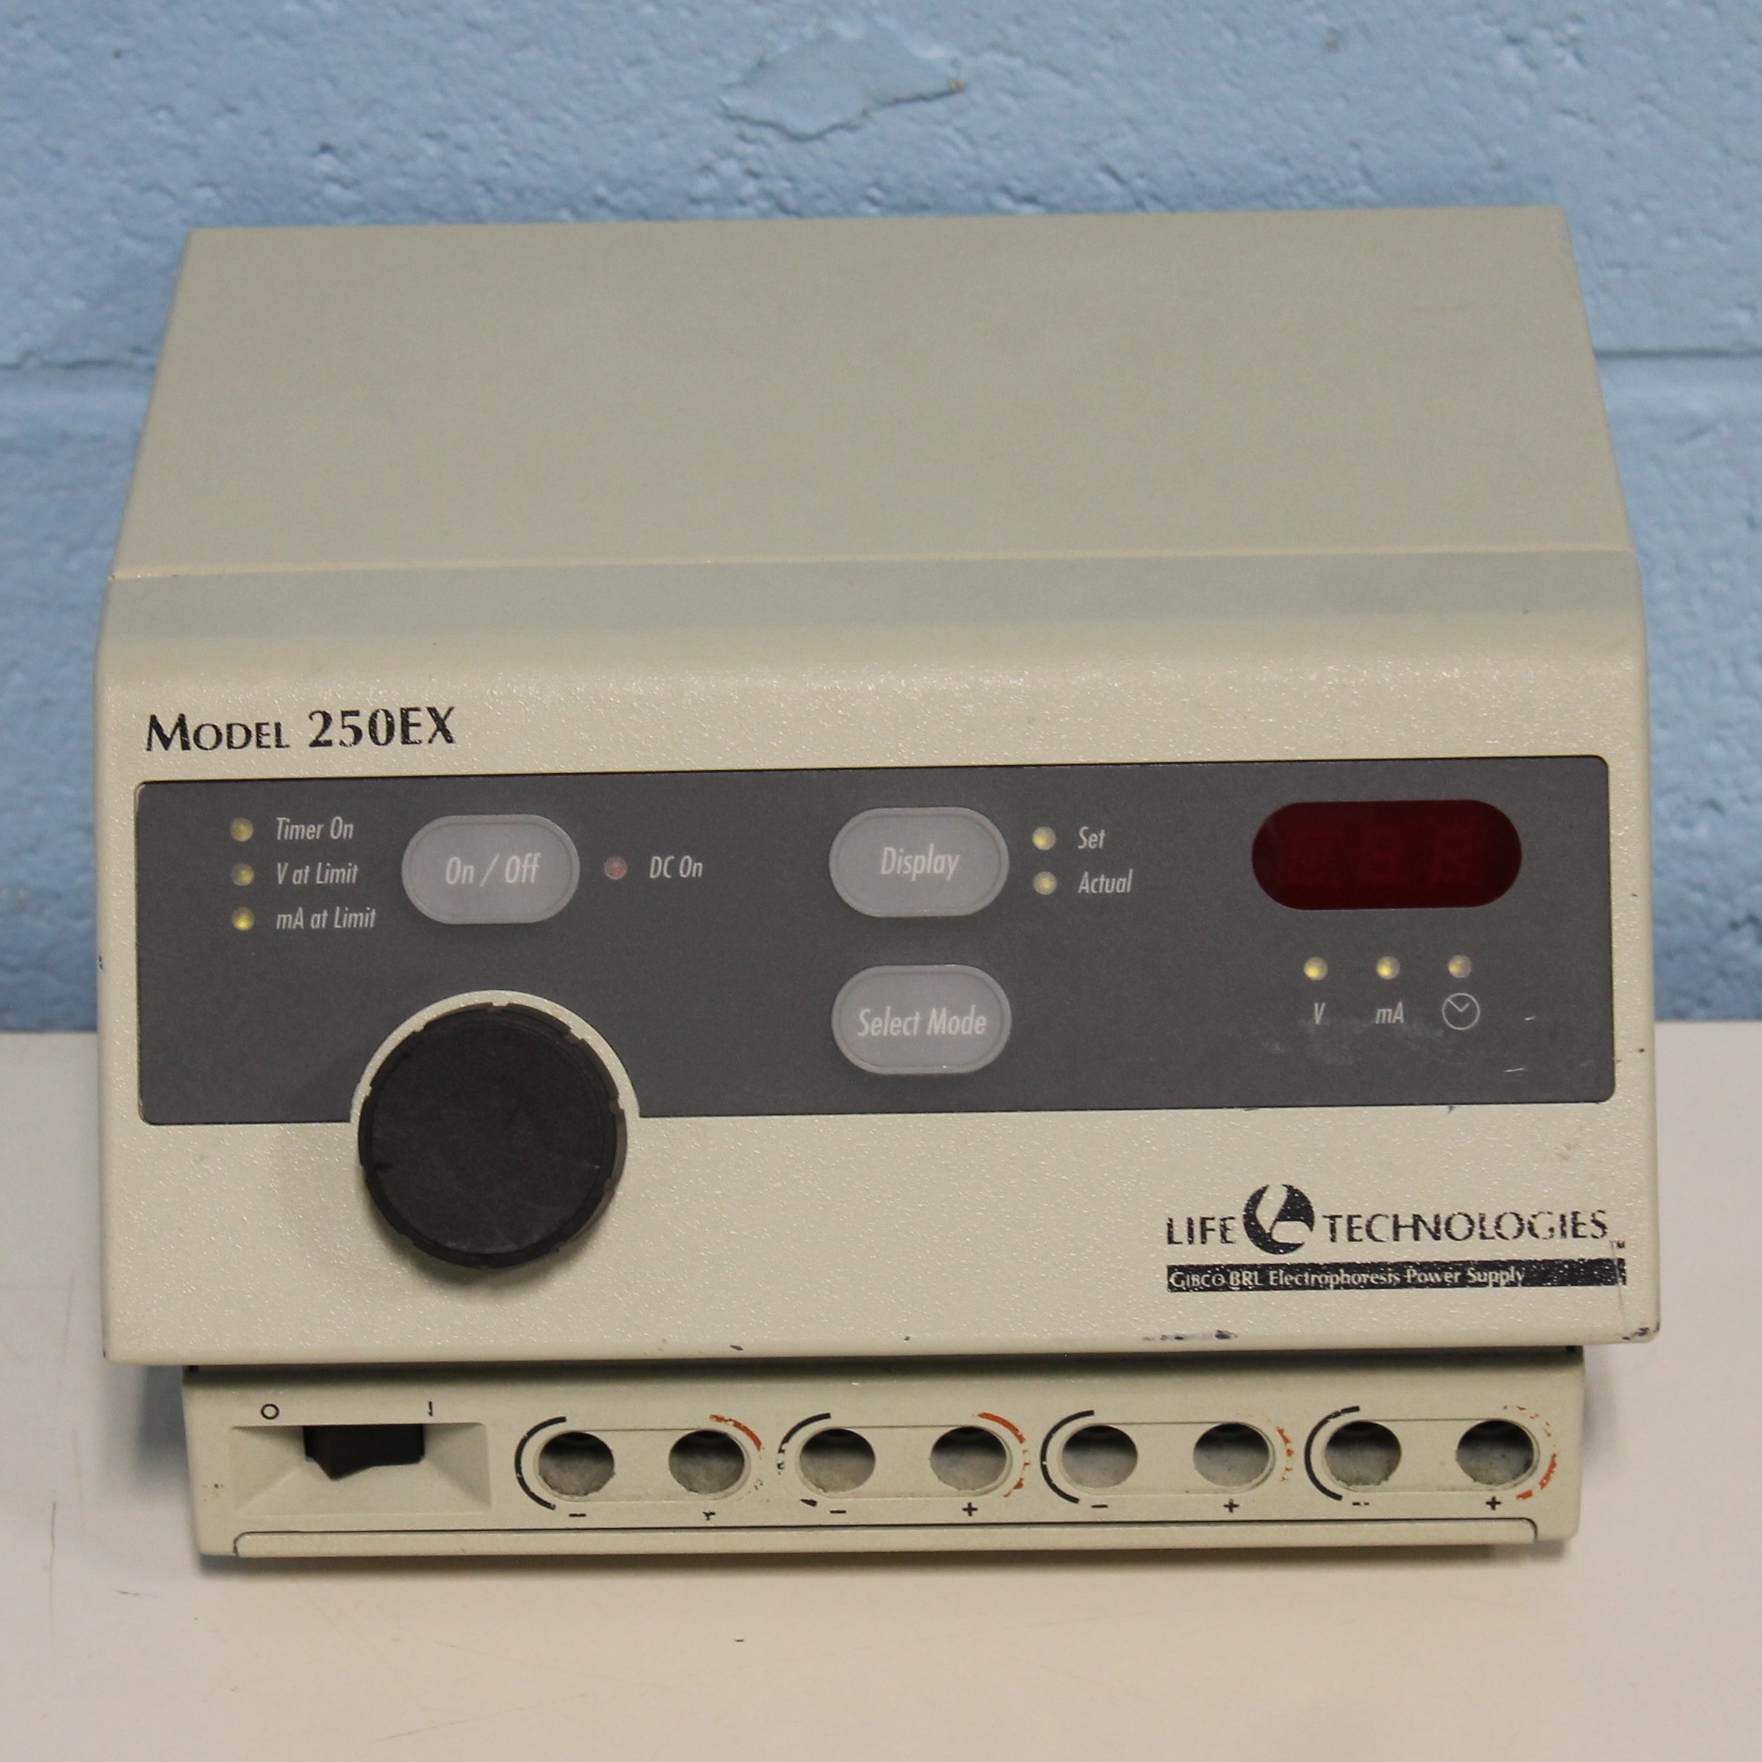 Electrophoresis Power Supply Model 250EX Name